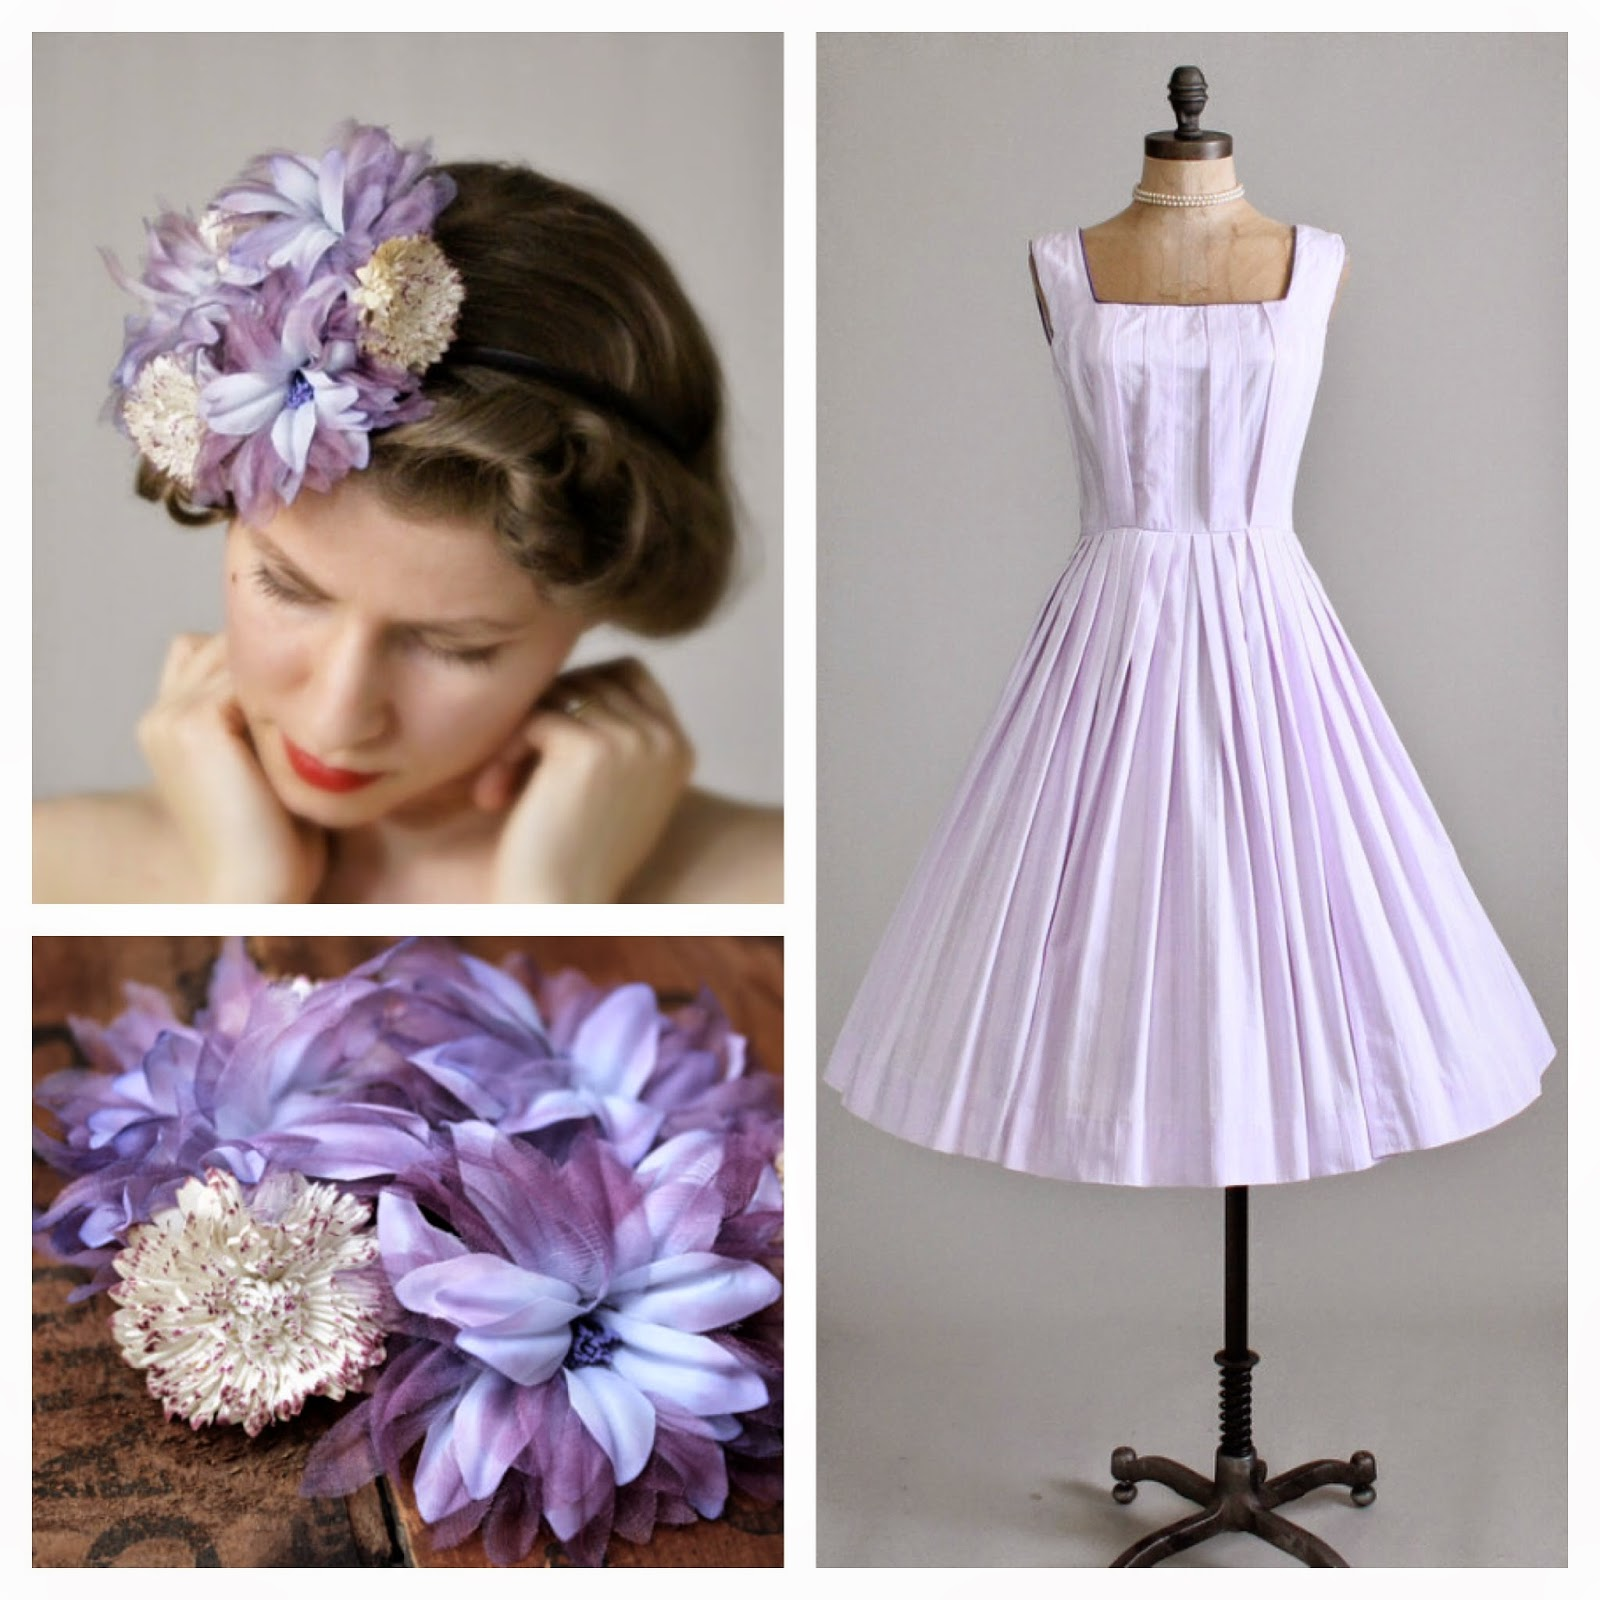 Lavender Cupcake #vintage #dress #lavender #1950s #purple